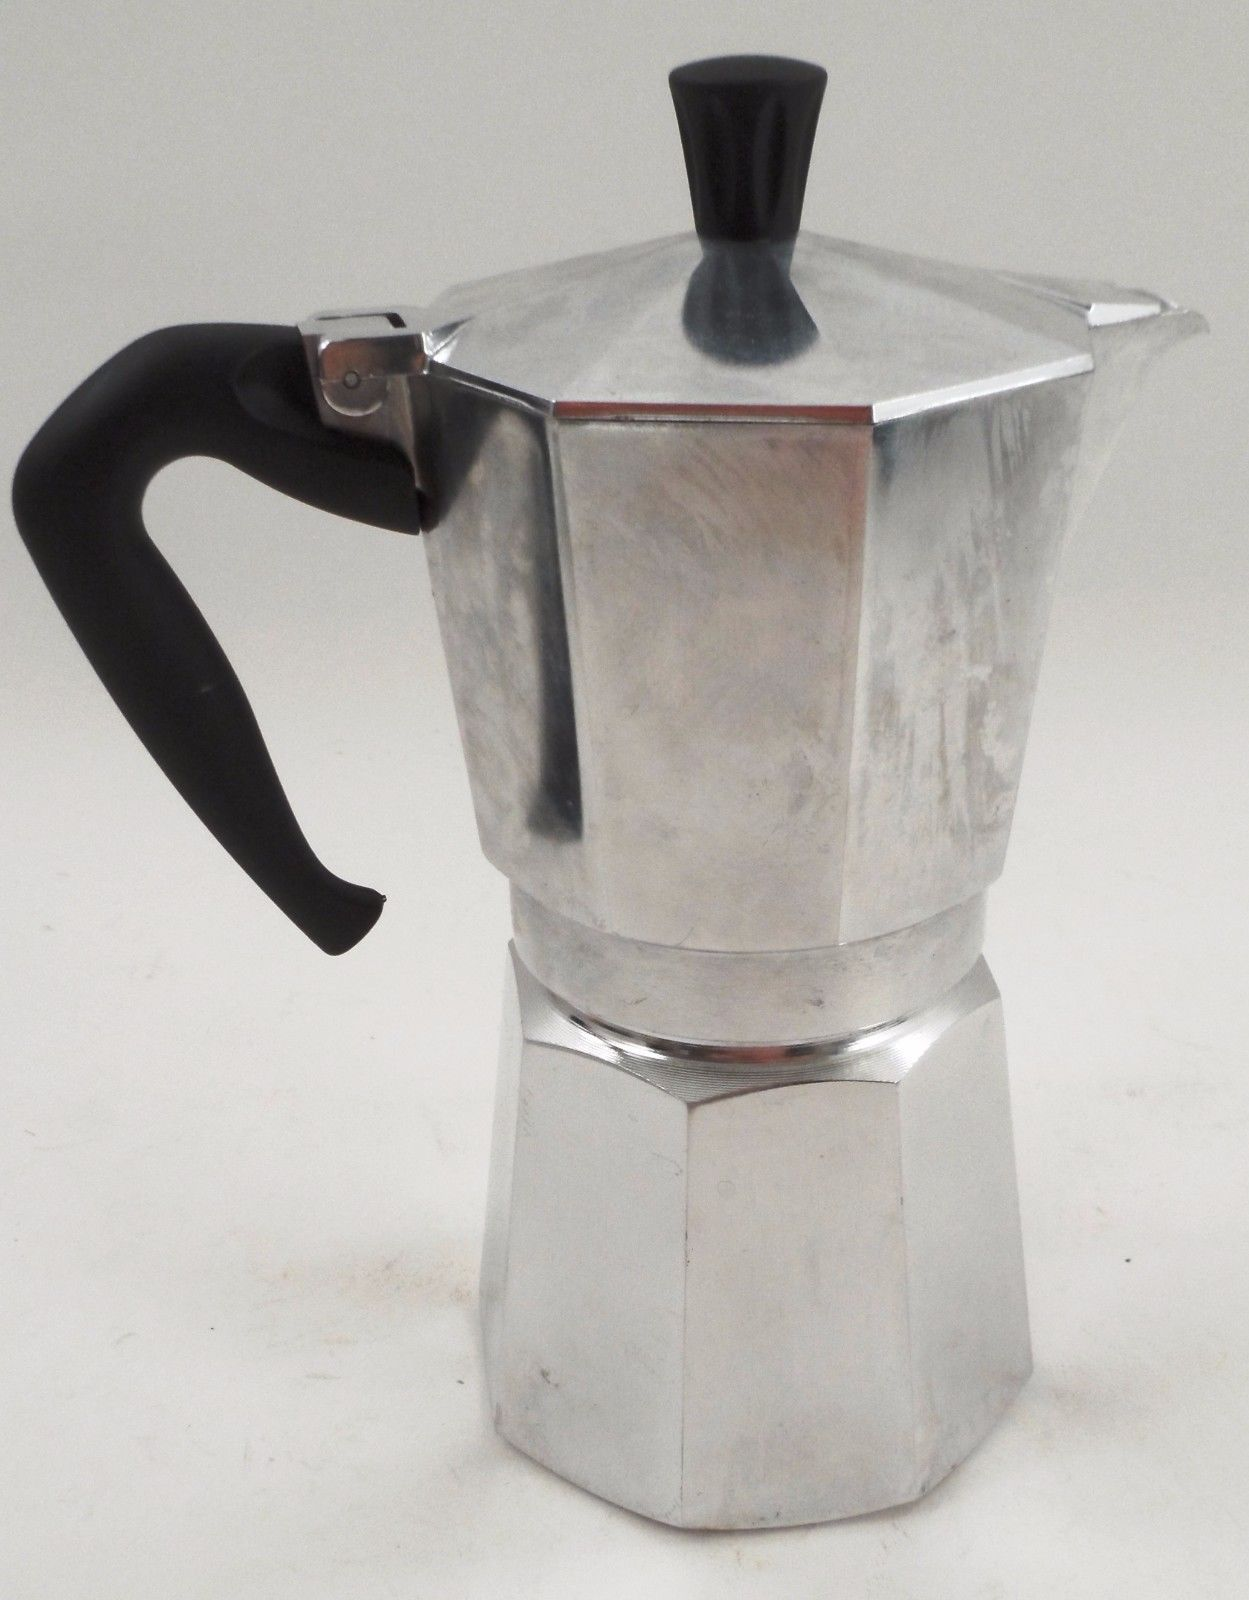 Vguc Classic Bialetti Moka Express 3 Cup And 50 Similar Items Rok Presso Manual Espresso Maker Stovetop Machine Coffee